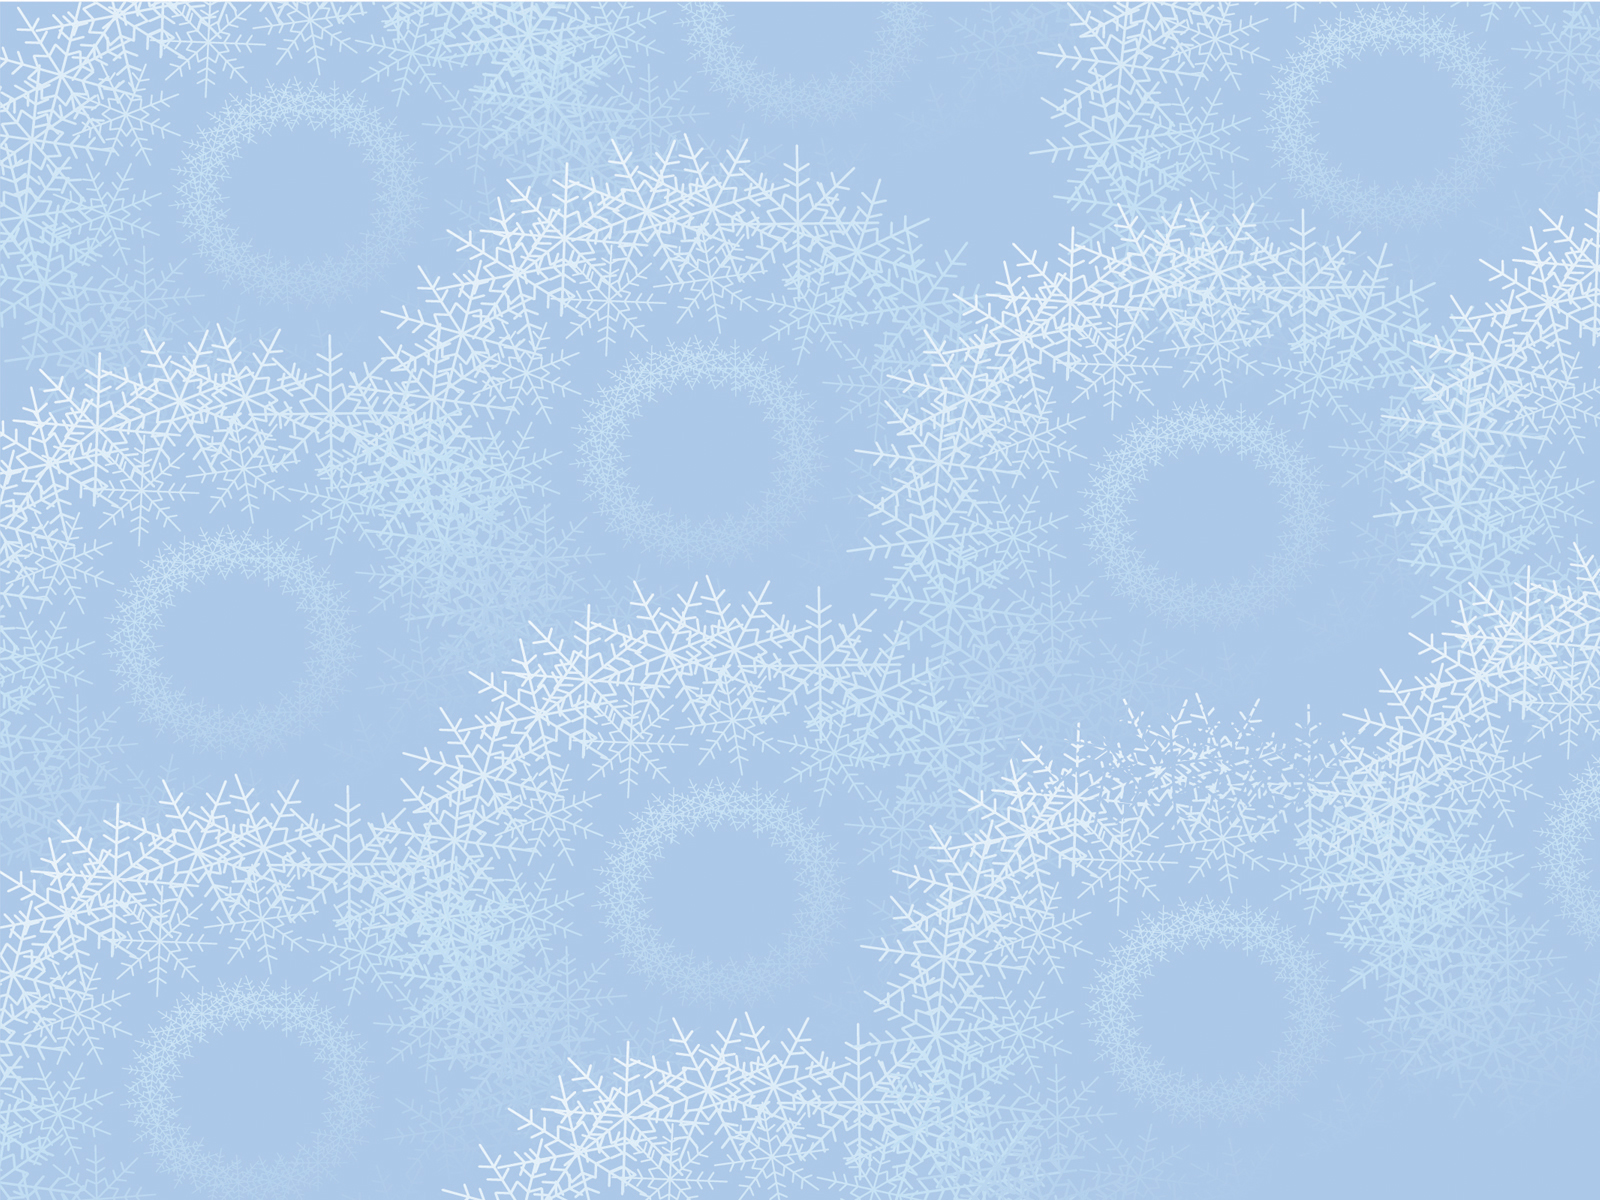 Snowflakes on light blue powerpoint backgrounds